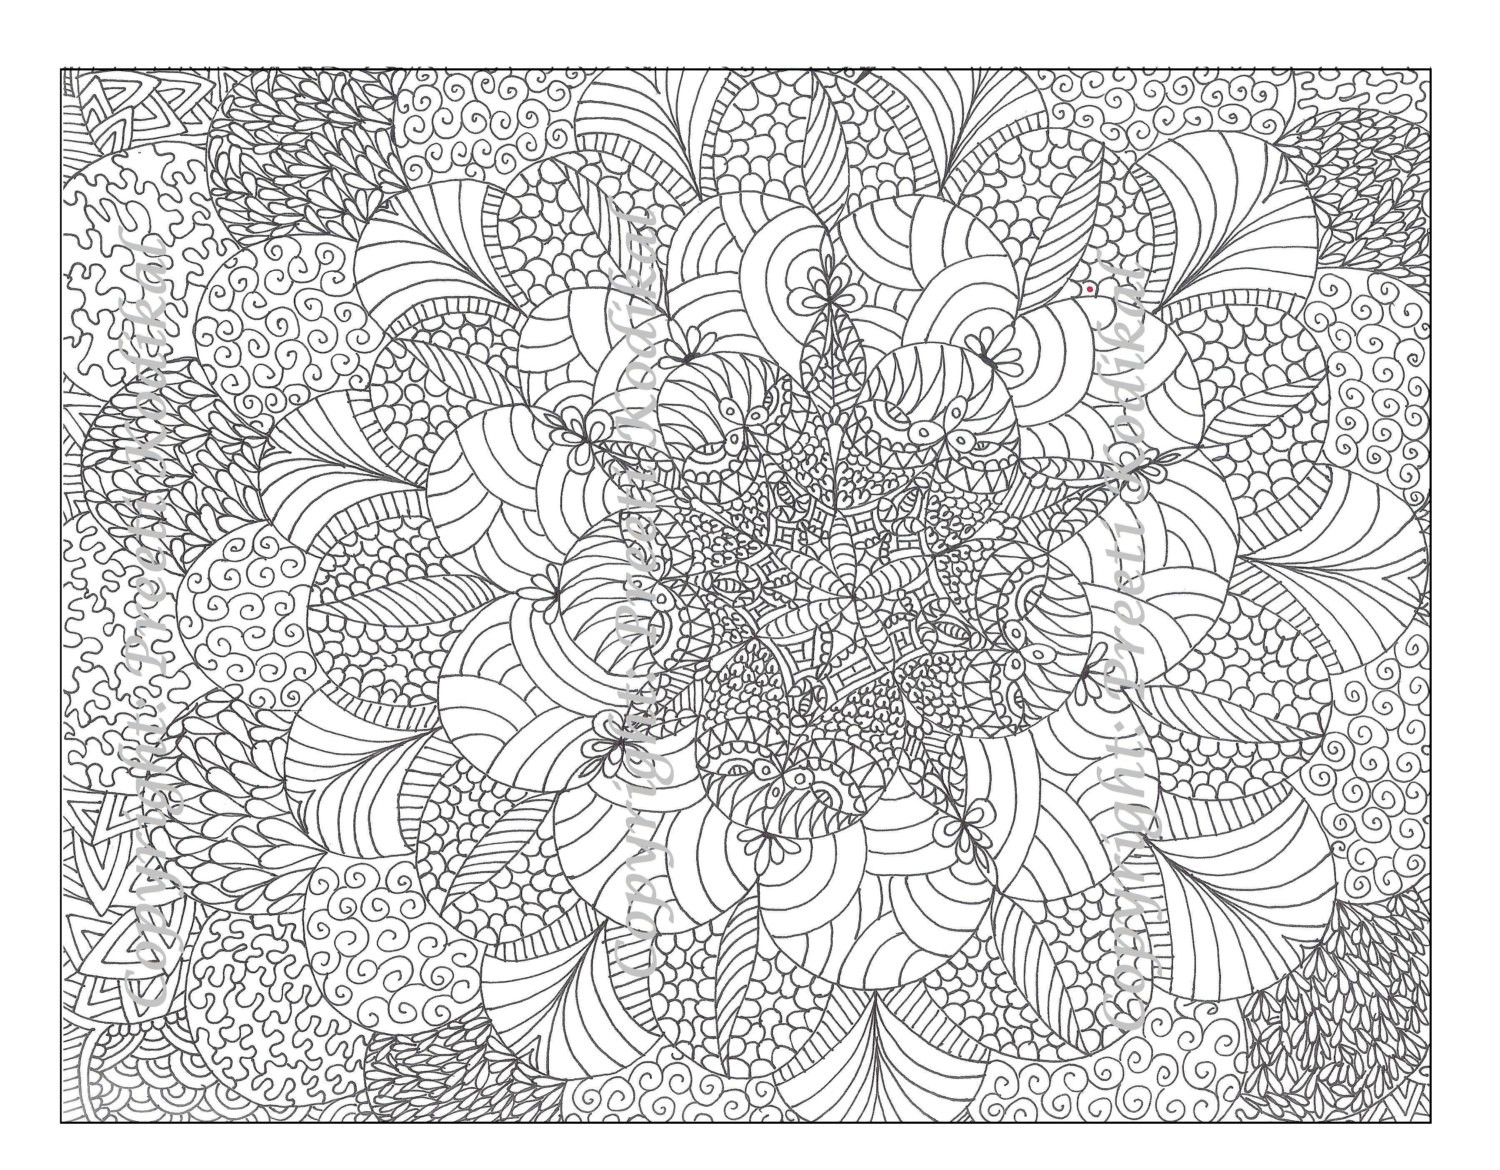 Best ideas about Free Printable Coloring Sheets For Adults . Save or Pin Free Printable Abstract Coloring Pages for Adults Now.